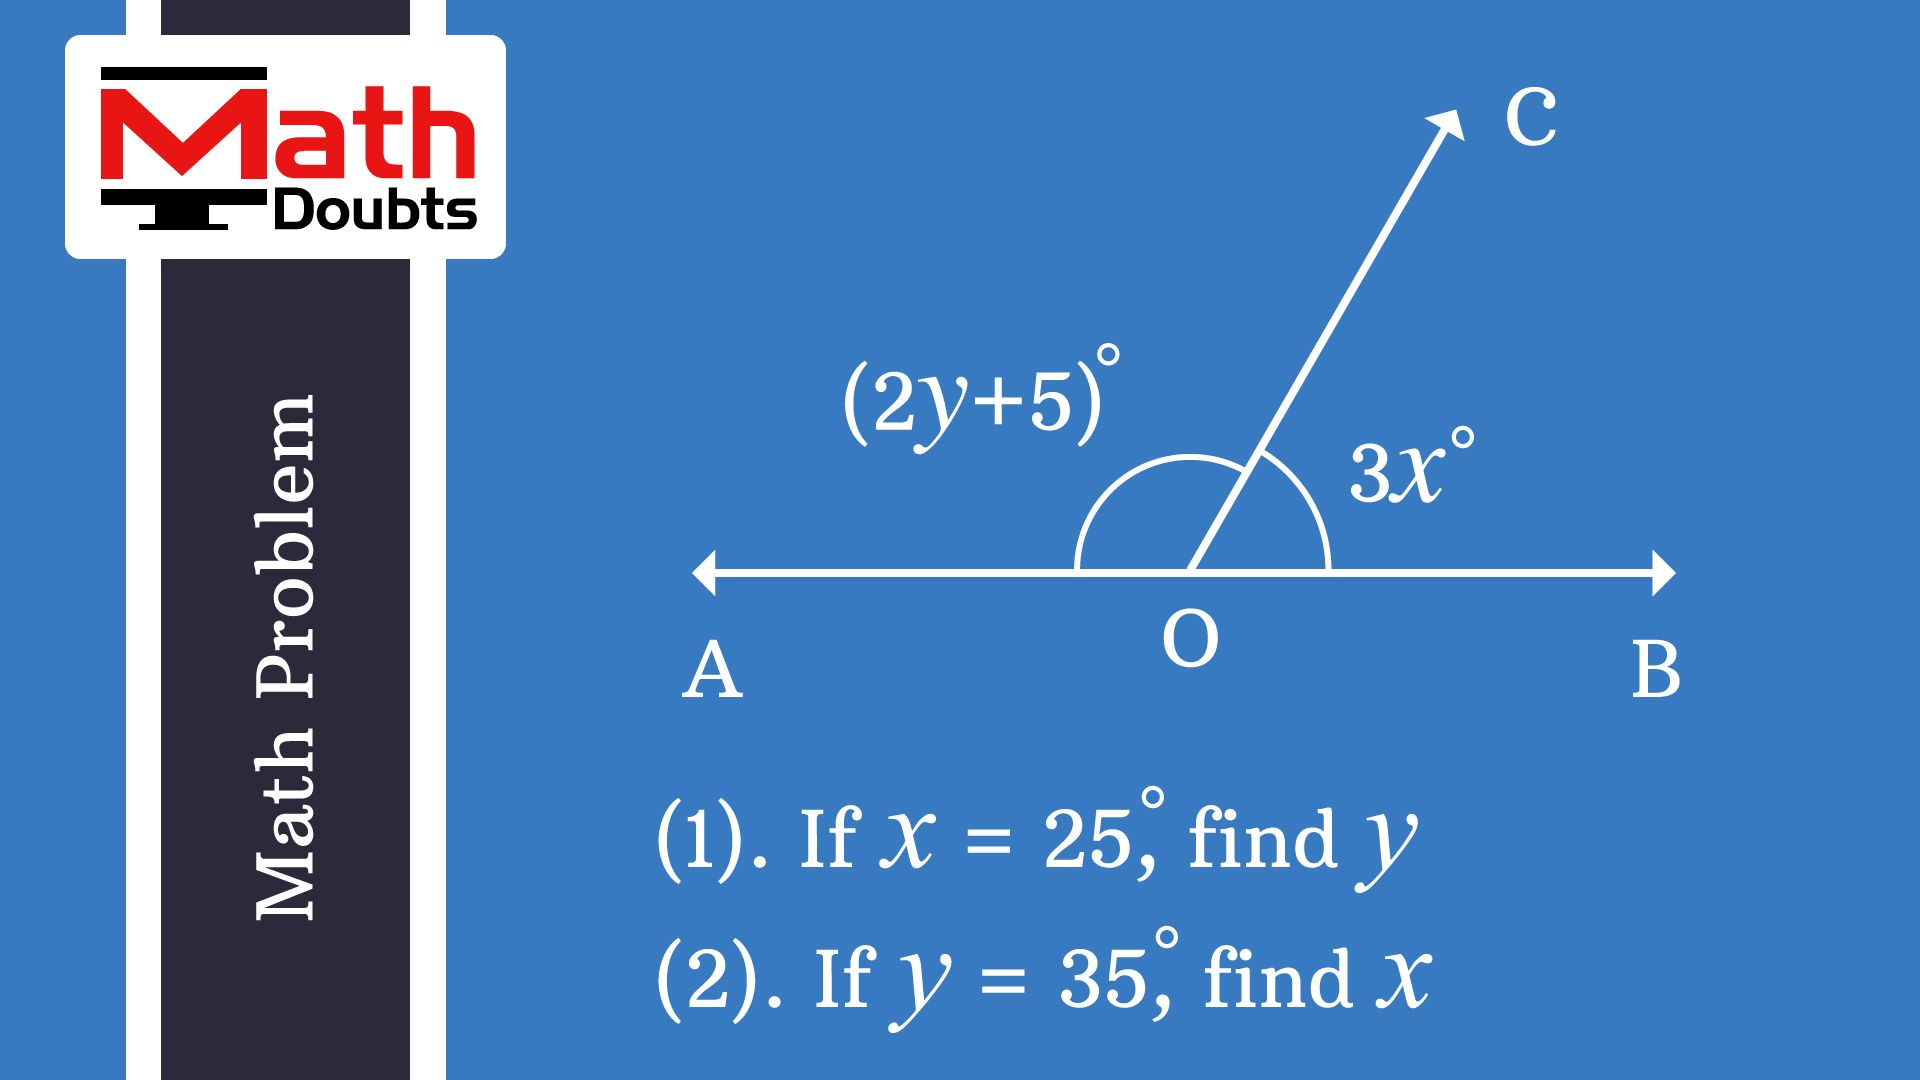 Learn solution of the geometry math problem in mathematics